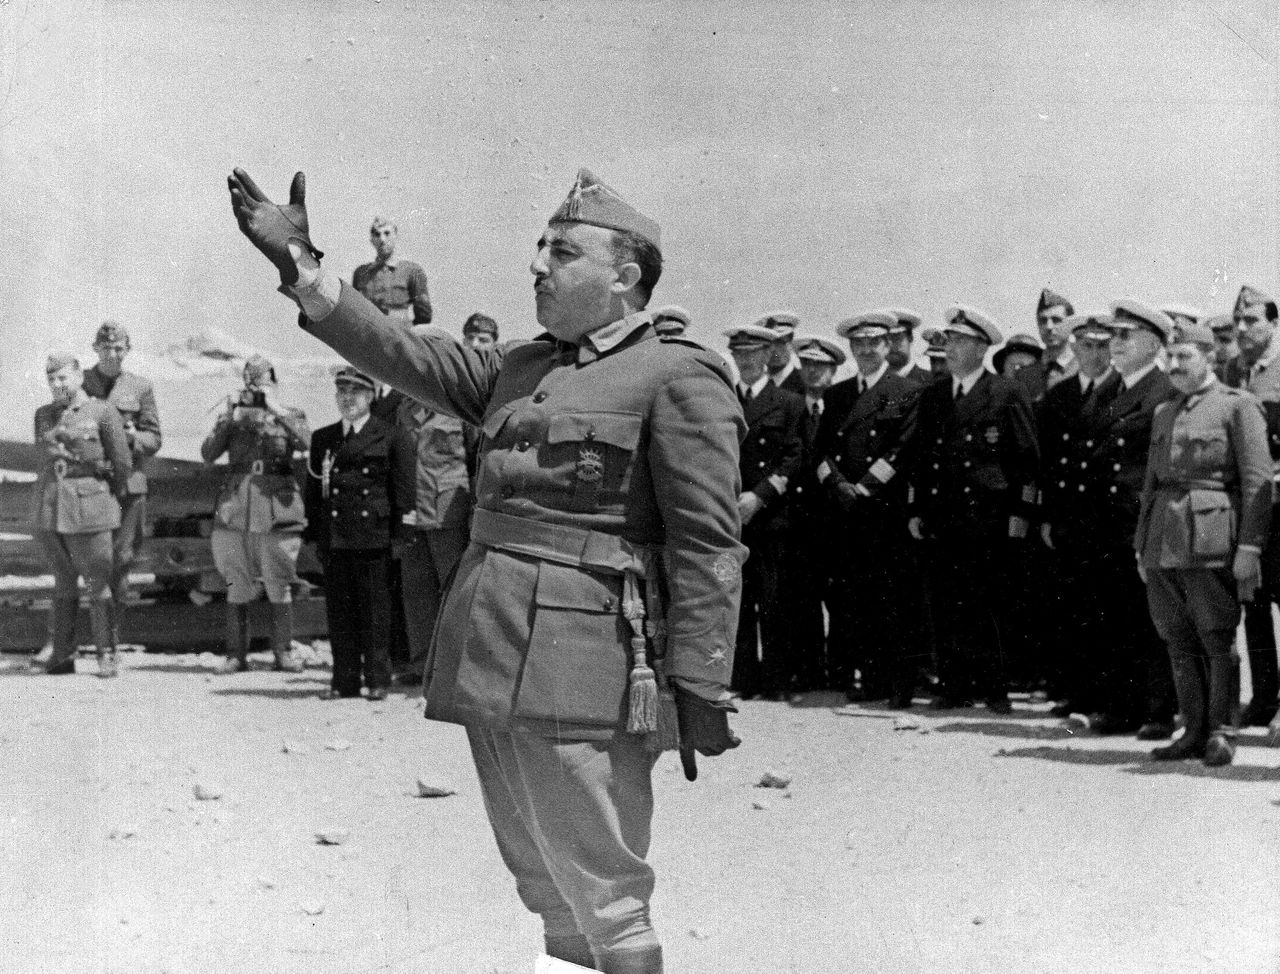 ** TO MATCH STORY SLUGGED SPAIN-FRANCO ANNIVERSARY ** General Francisco Franco speaks to naval forces at Vinaroz, Spain, on July 26, 1938, en route to the front to supervise the drive against the Republican Army at Valencia. This Sunday, Nov. 20 sees the 30th anniversary of the death of Gen. Francisco Franco, the man who rebelled against Spain's young republic in 1936, starting a civil war which ushered in his nearly 40-year rule, iron-fisted and often brutal. Two days later comes the 30th anniversary of the proclamation as king of Spain of Juan Carlos, the person who, although hand-picked as Franco's successor, has played the most important role in the country's transition to democracy and is seen as the single most important unifying factor in Spain. (AP Photo/AP Photo)